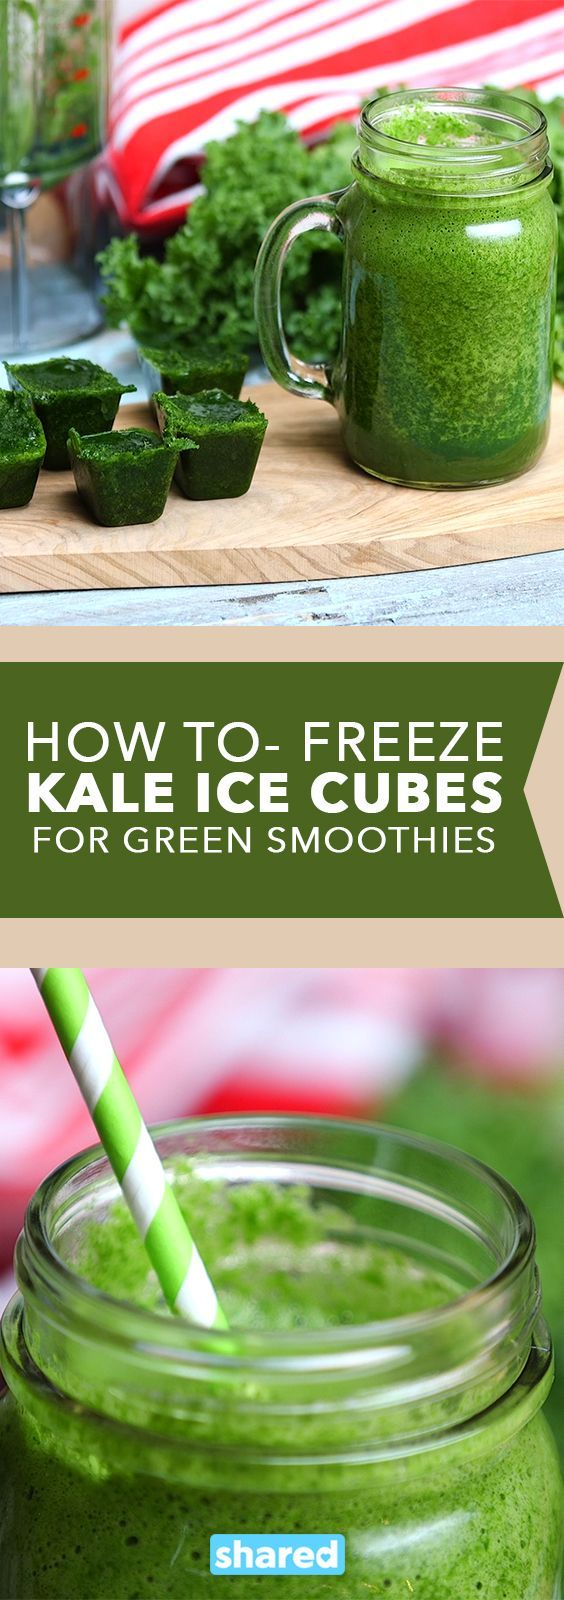 How To: Freeze Kale Ice Cubes for Green Smoothies